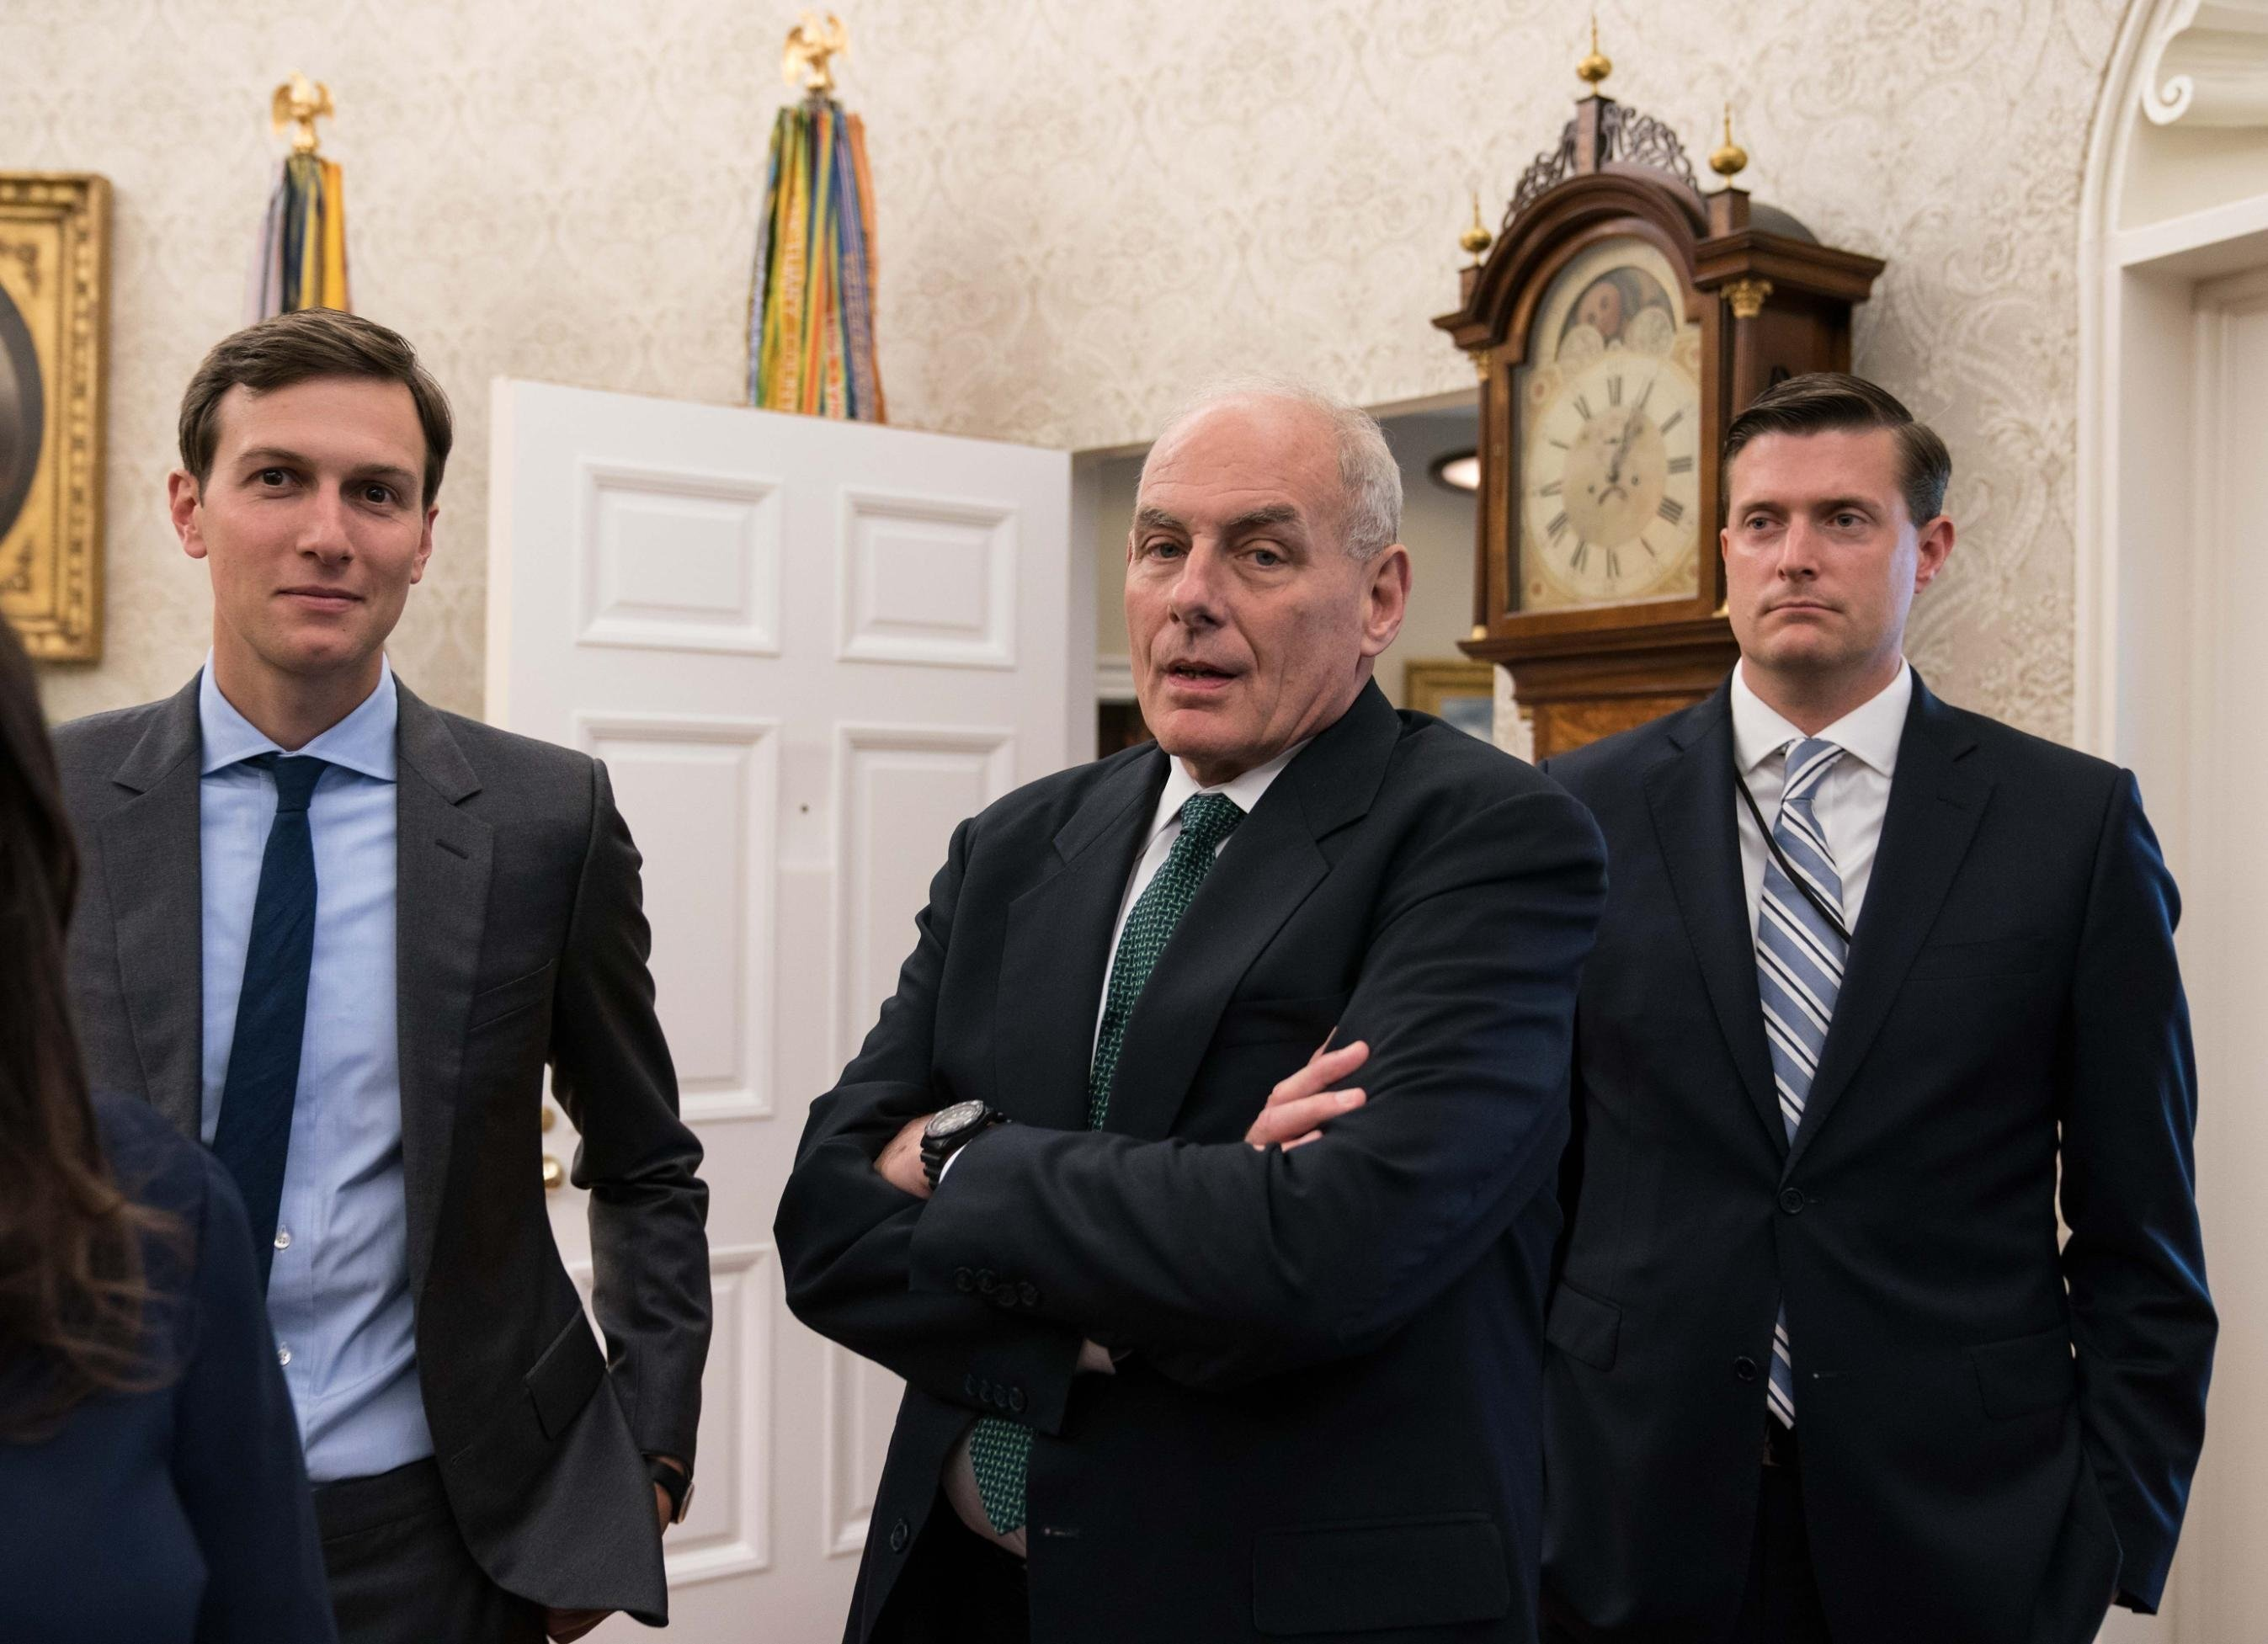 John Kelly jokes chief of staff job is God's punishment